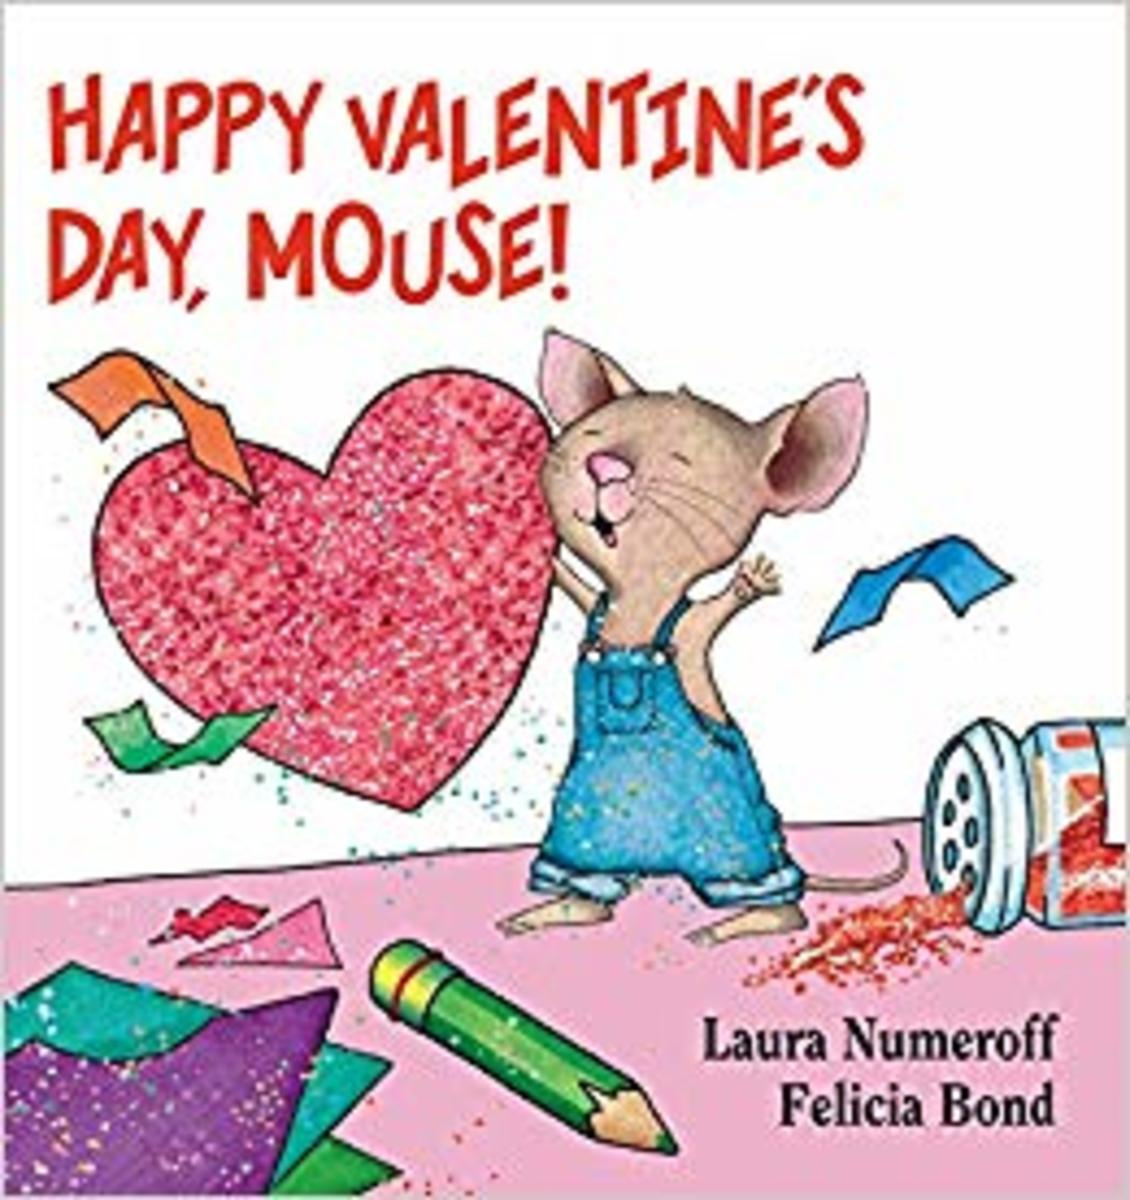 Happy Valentine's Day Mouse by Laura Numeroff